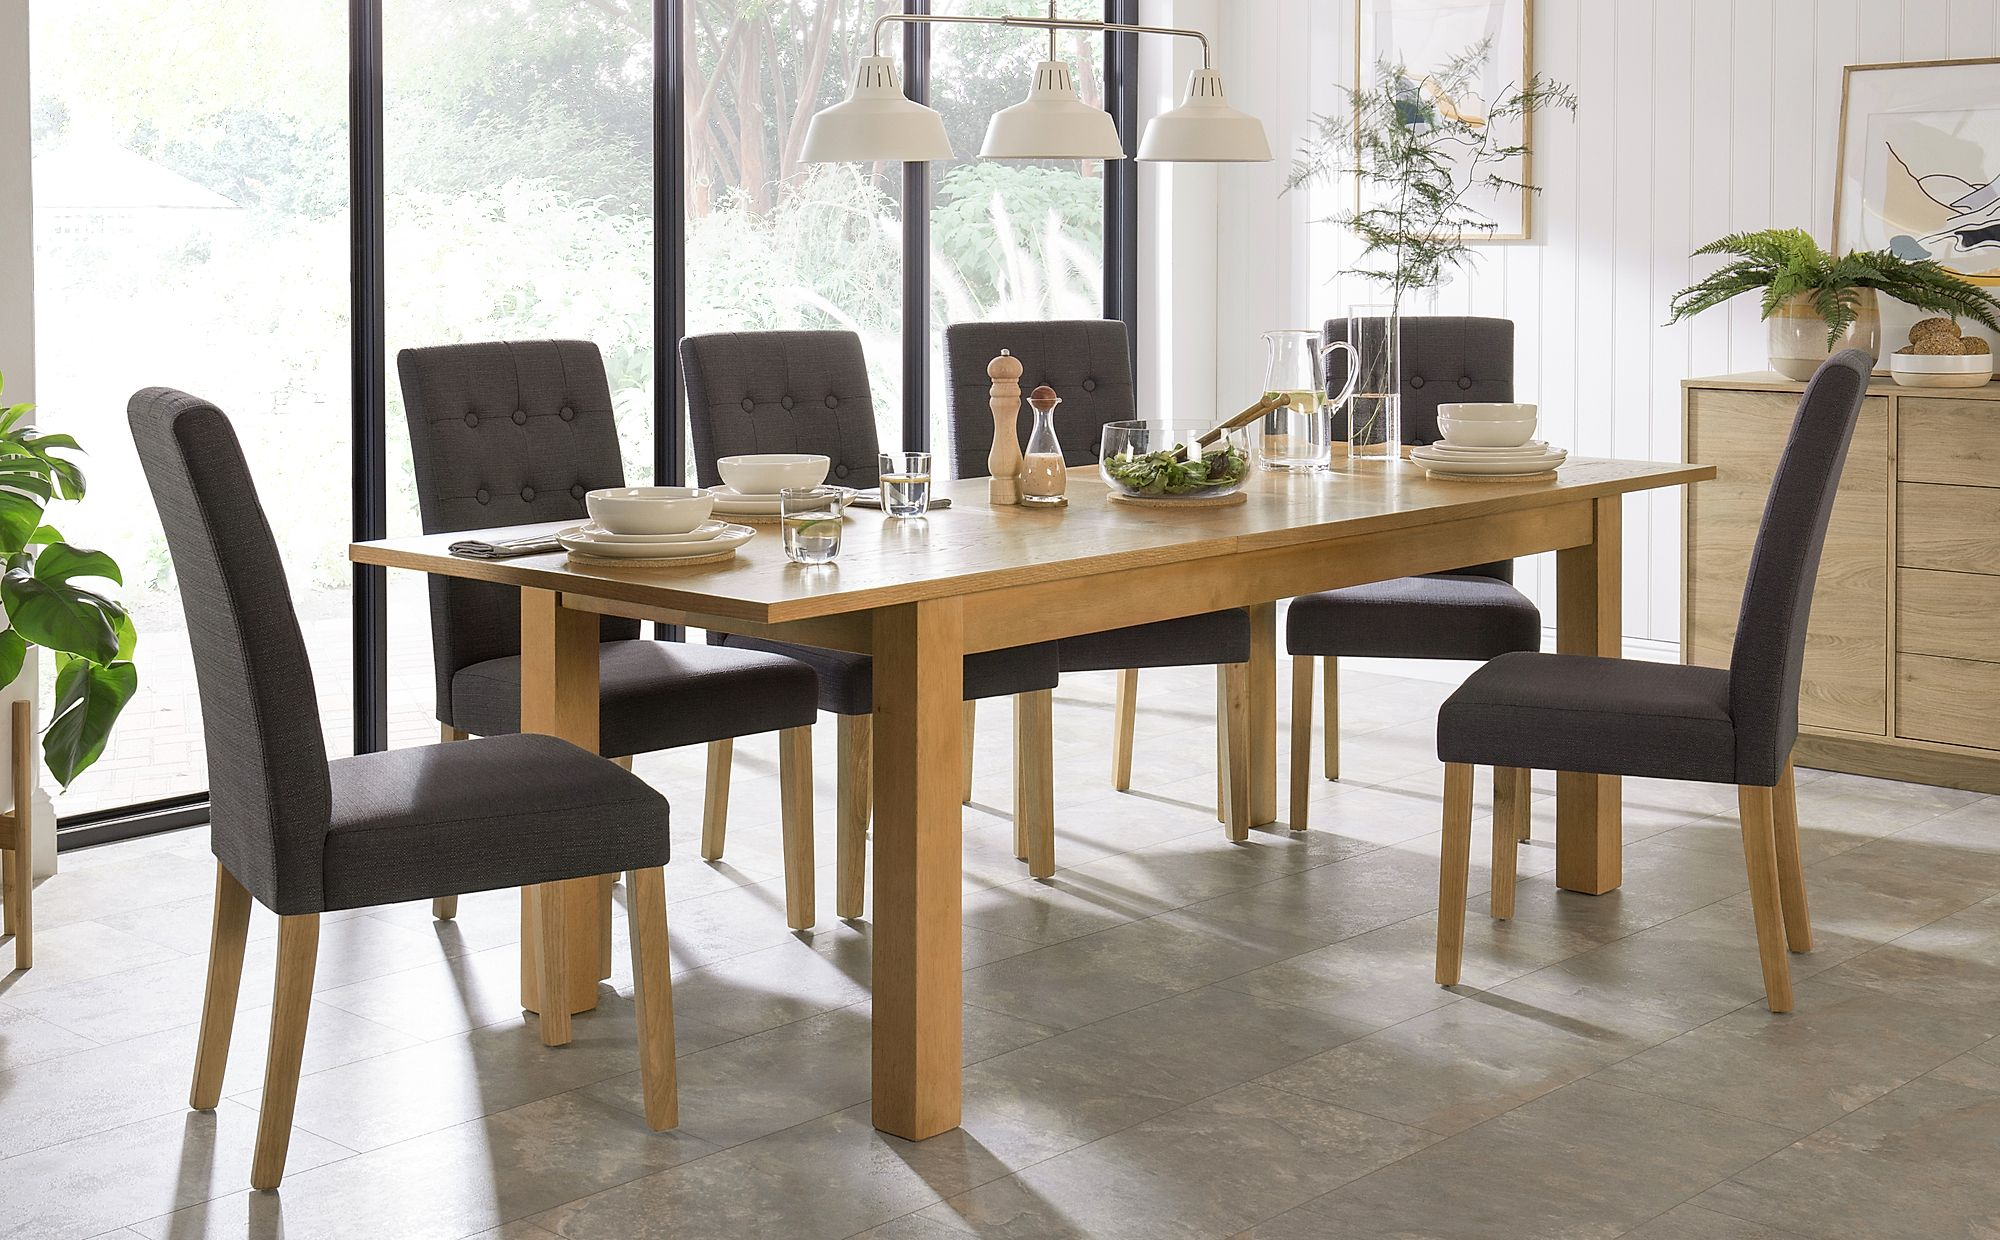 Gallery Hamilton 180 230cm Oak Extending Dining Table With 8 Regent Slate Chairs